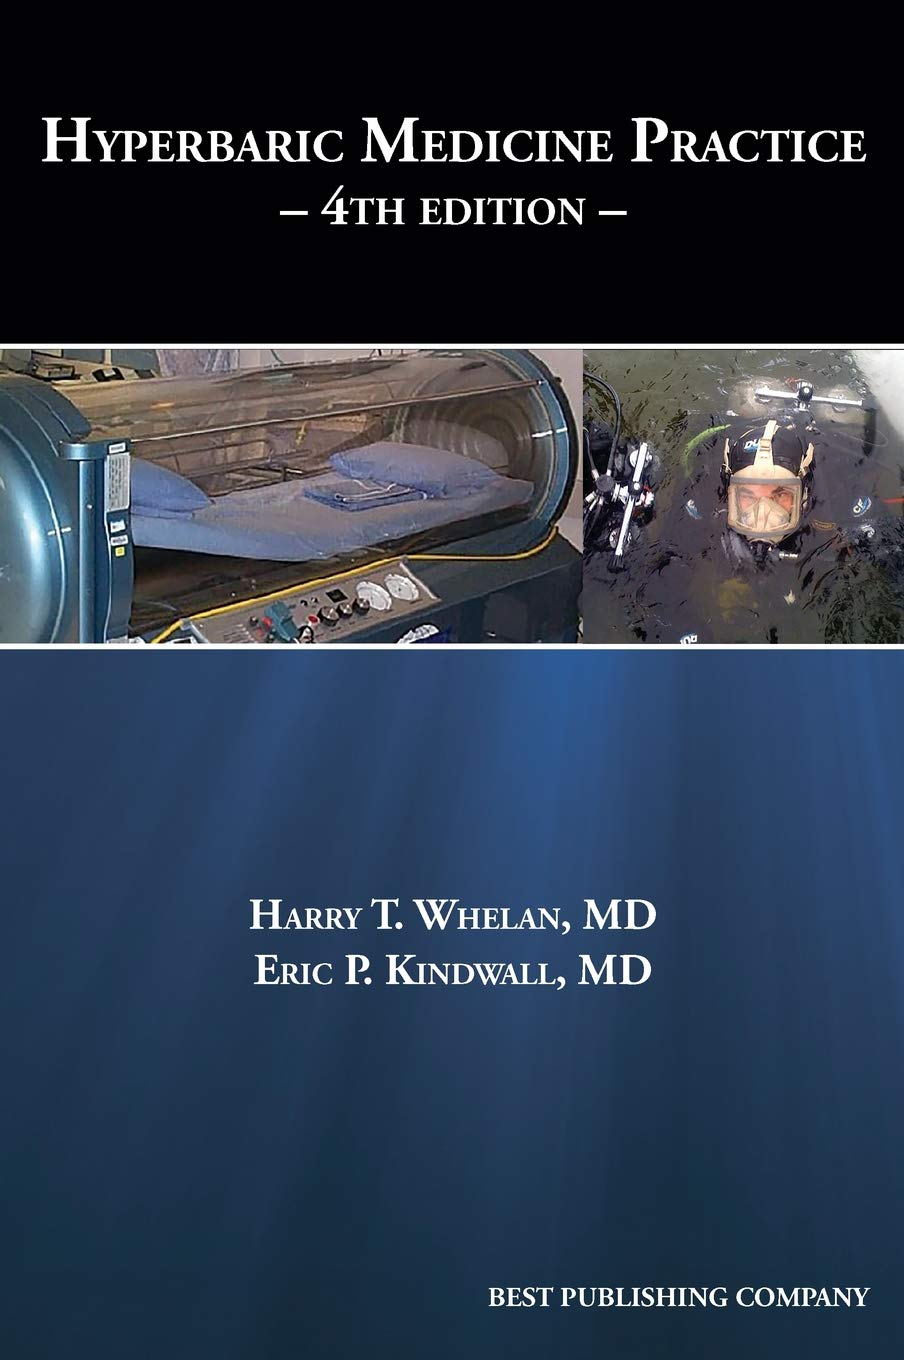 Hyperbaric Medicine Practice 4th Edition by Best Publishing Company